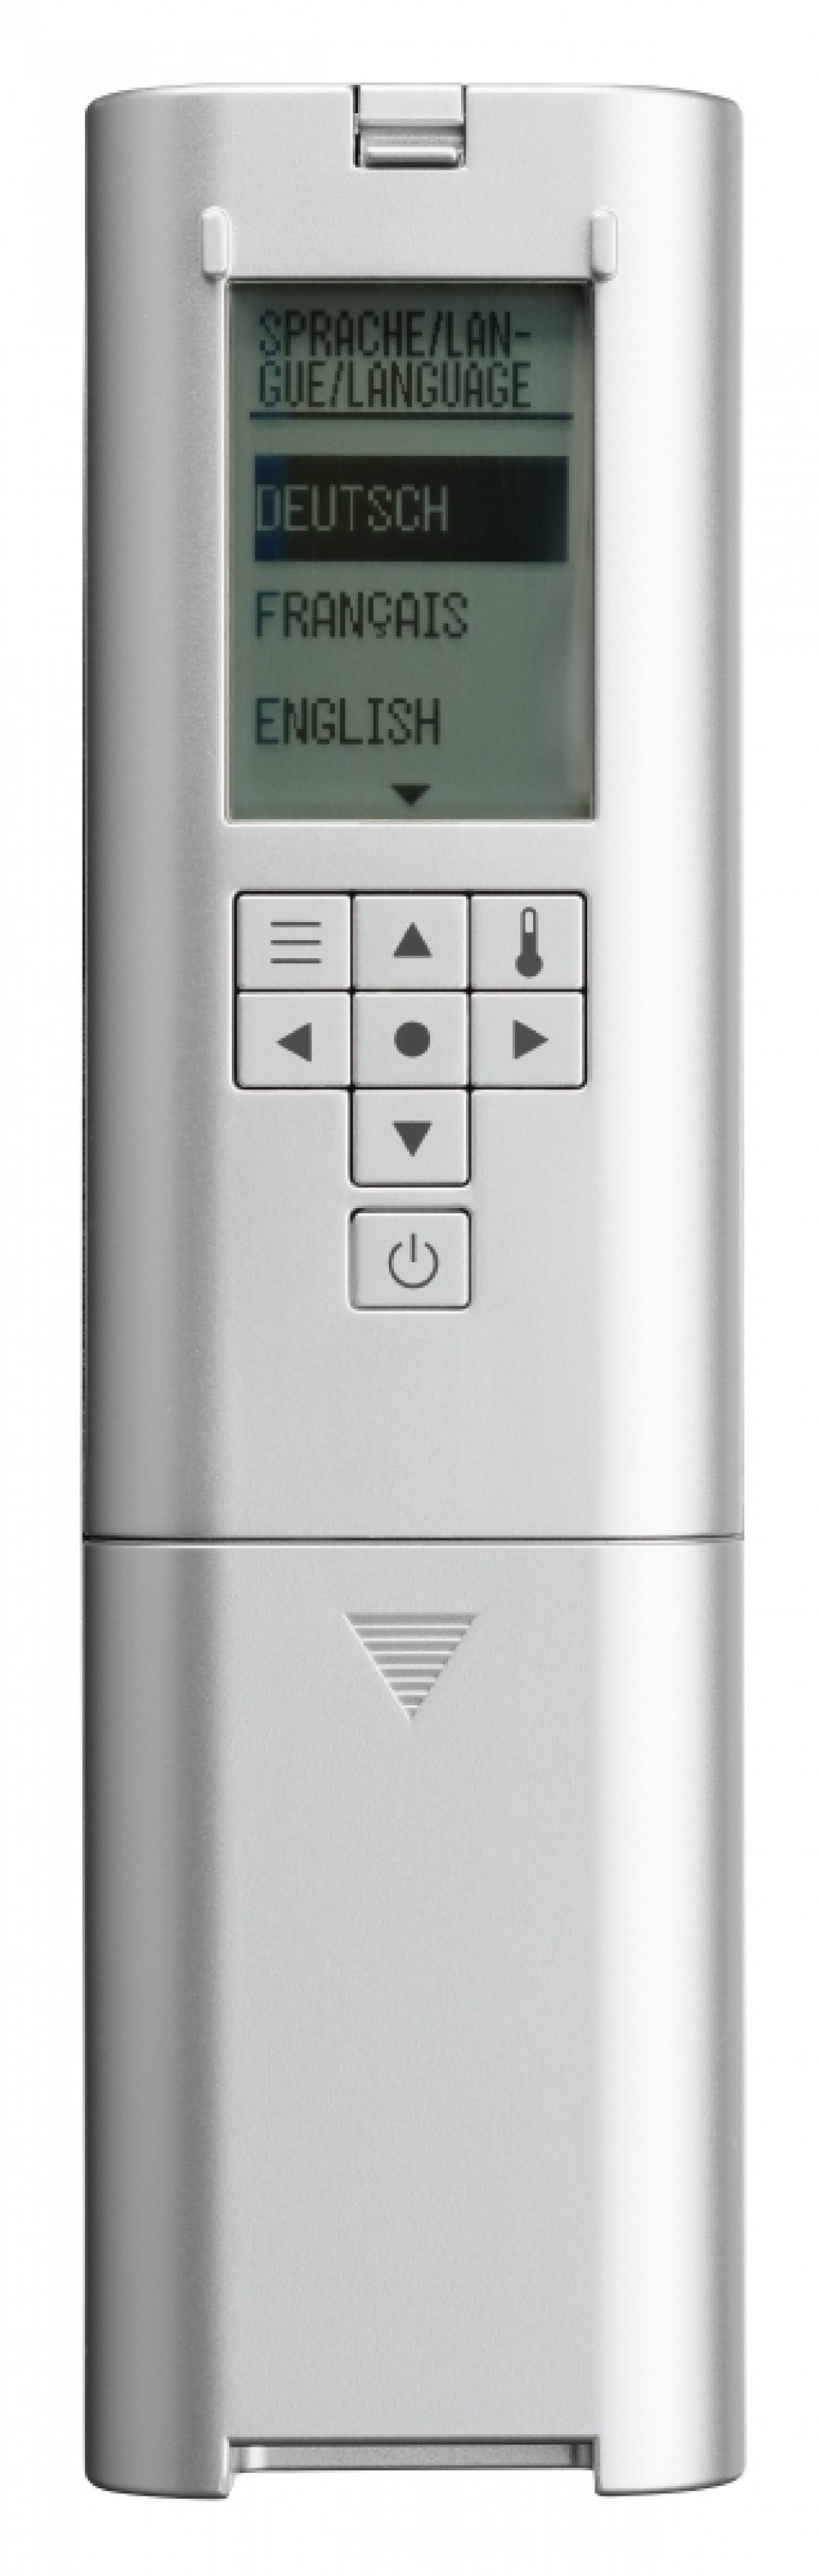 toto washlet sw automatic flush united kingdom remote control